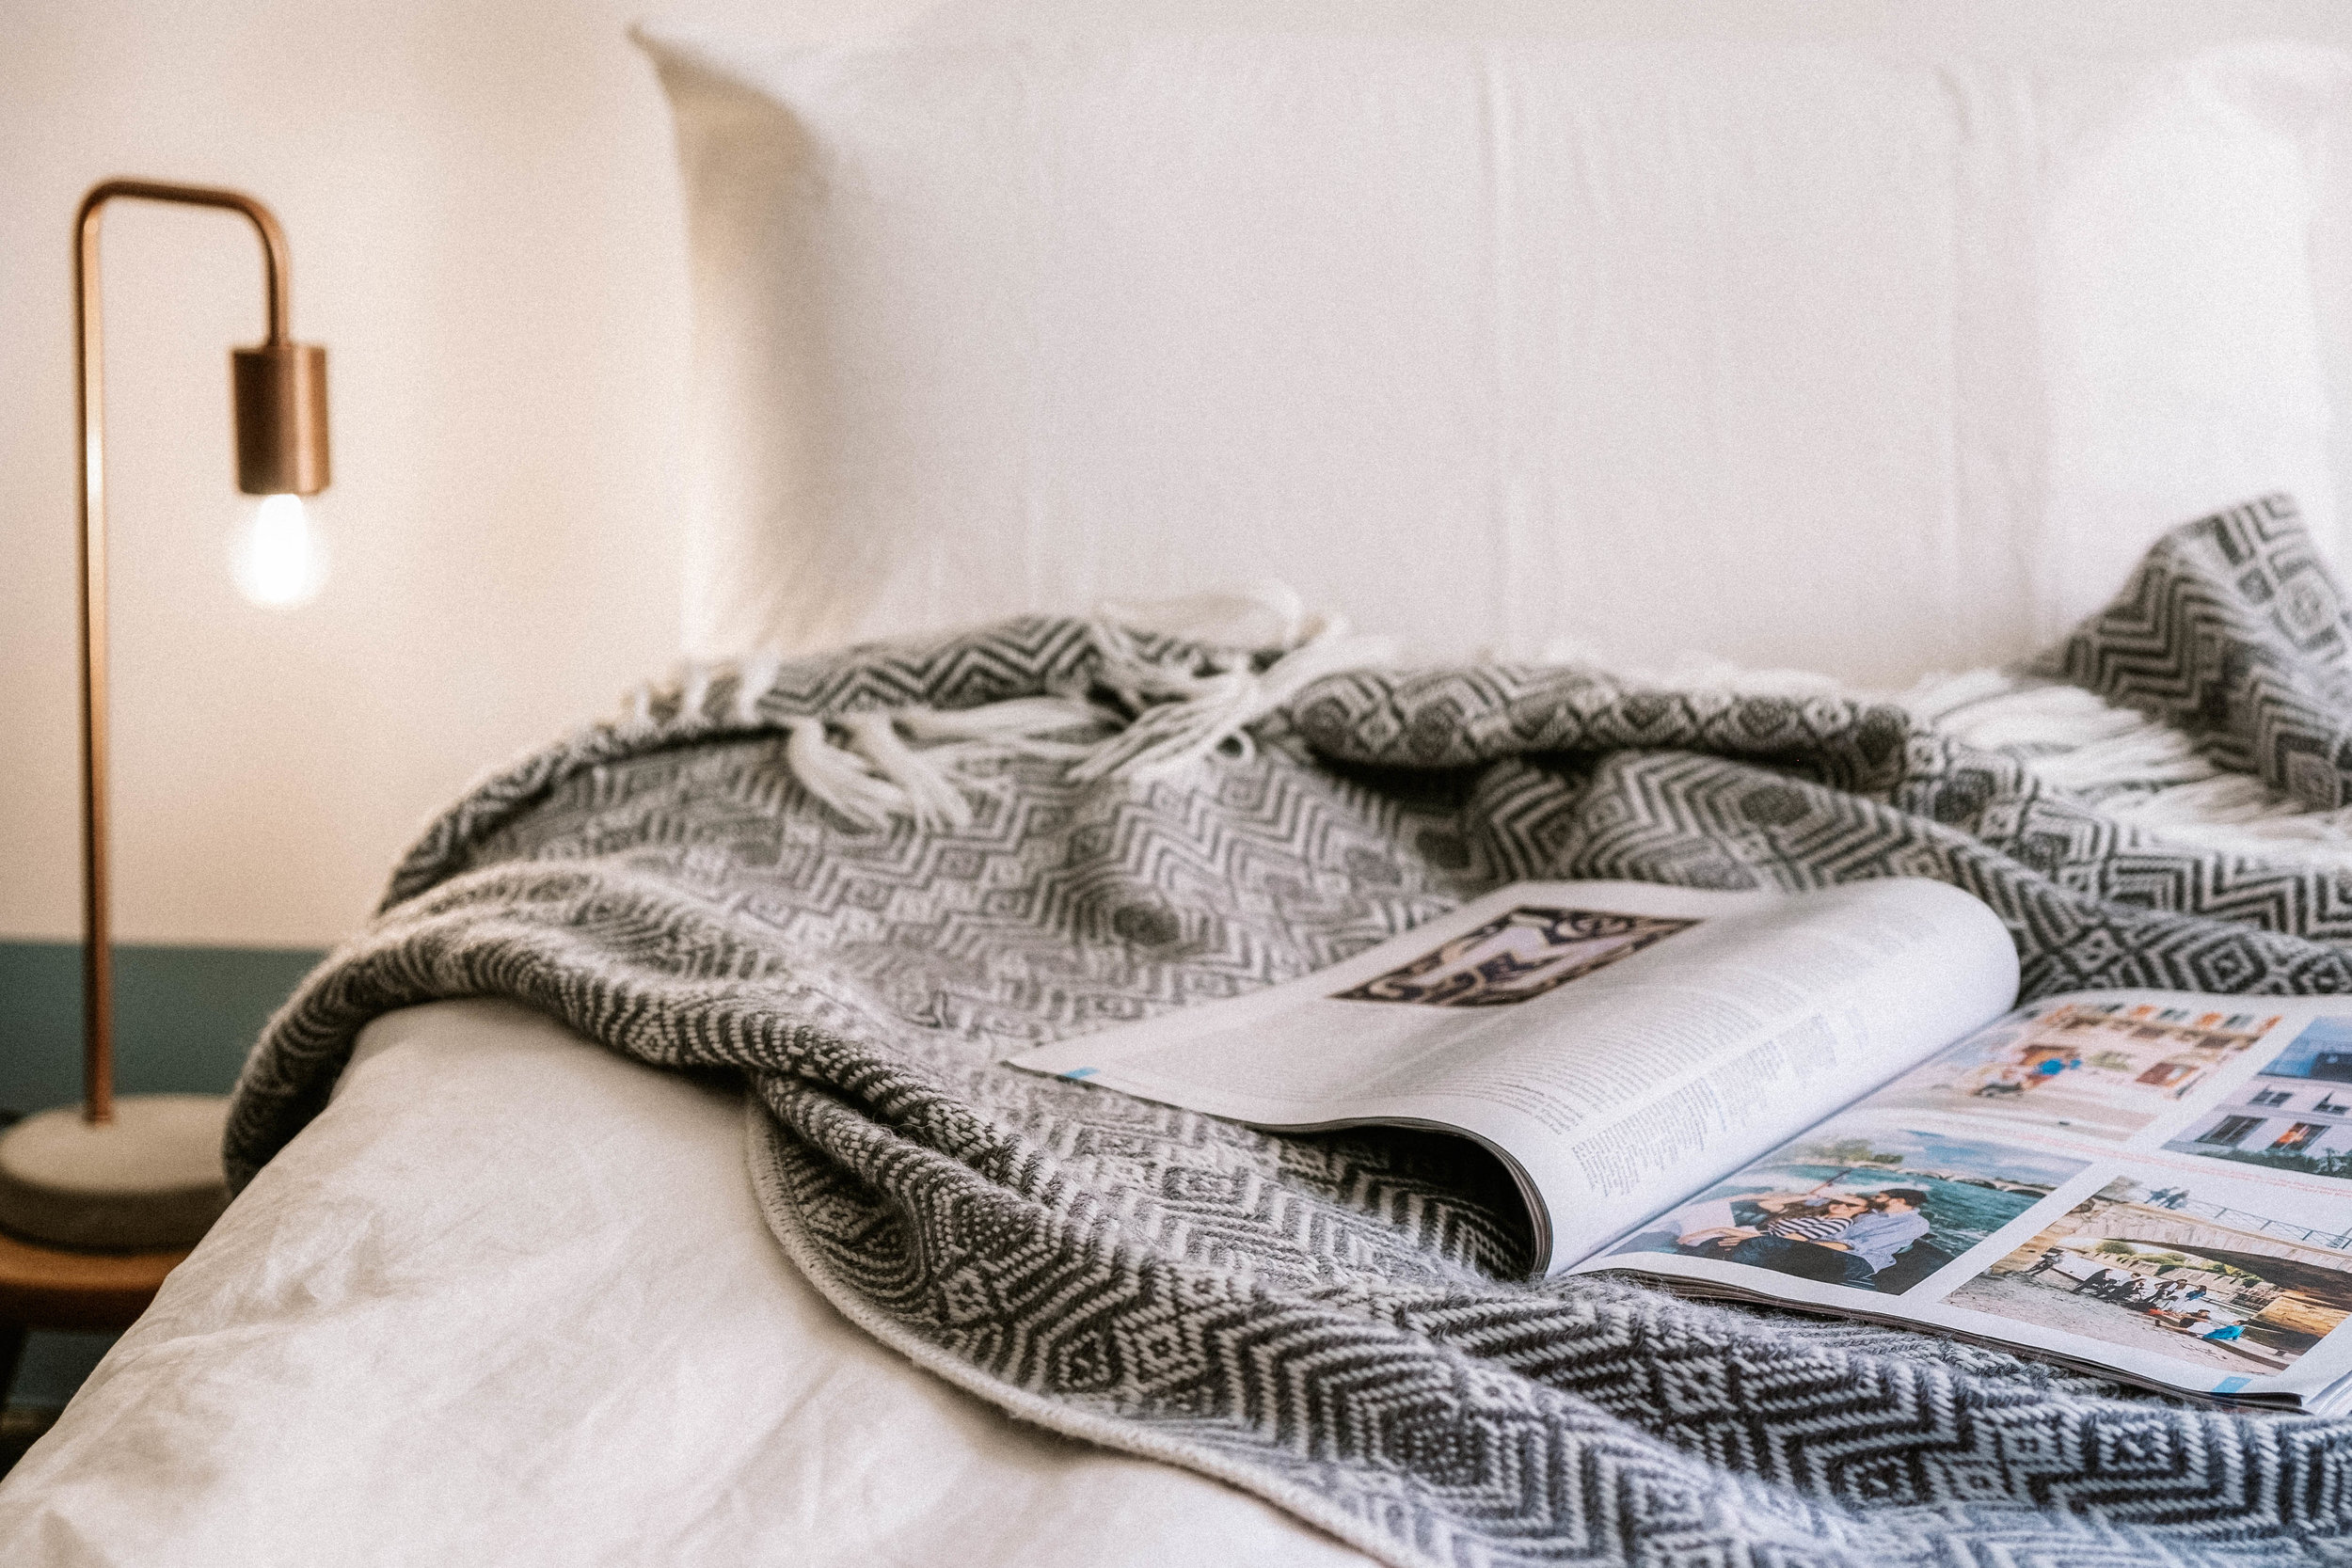 bed-private-nine-coliving (1 of 1).jpg